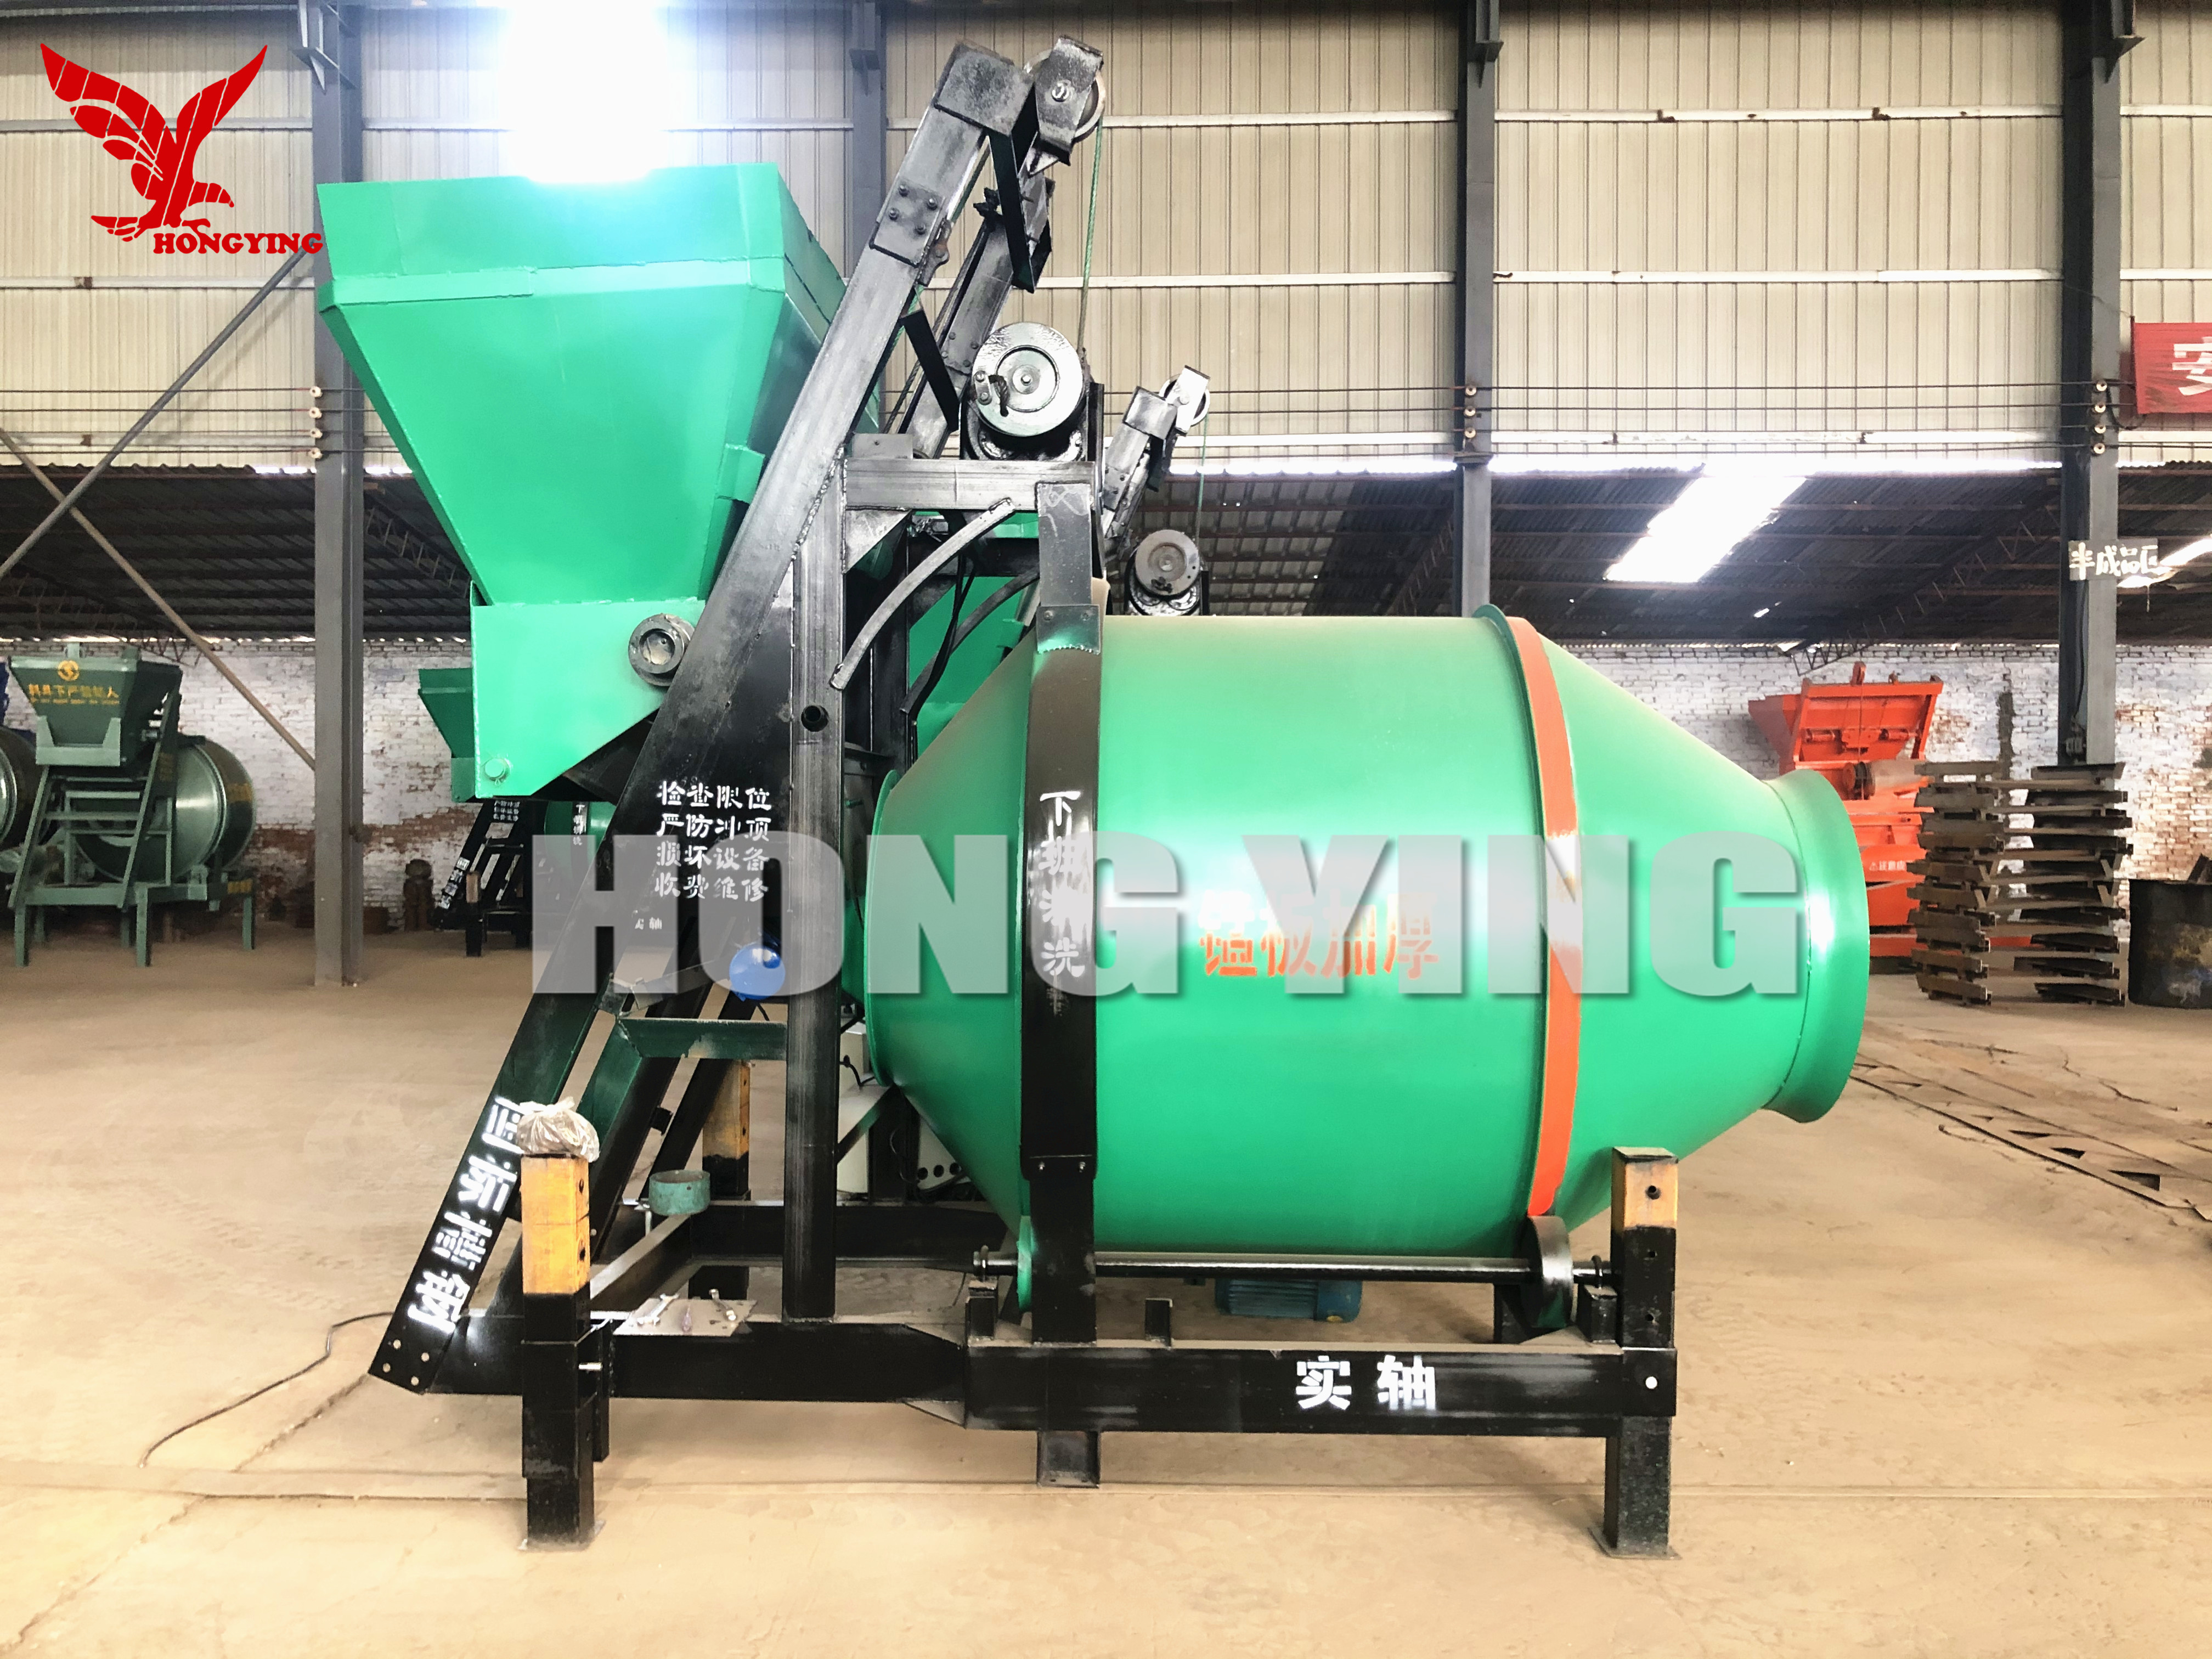 Hongying Portable mixer machine/concrete mixer